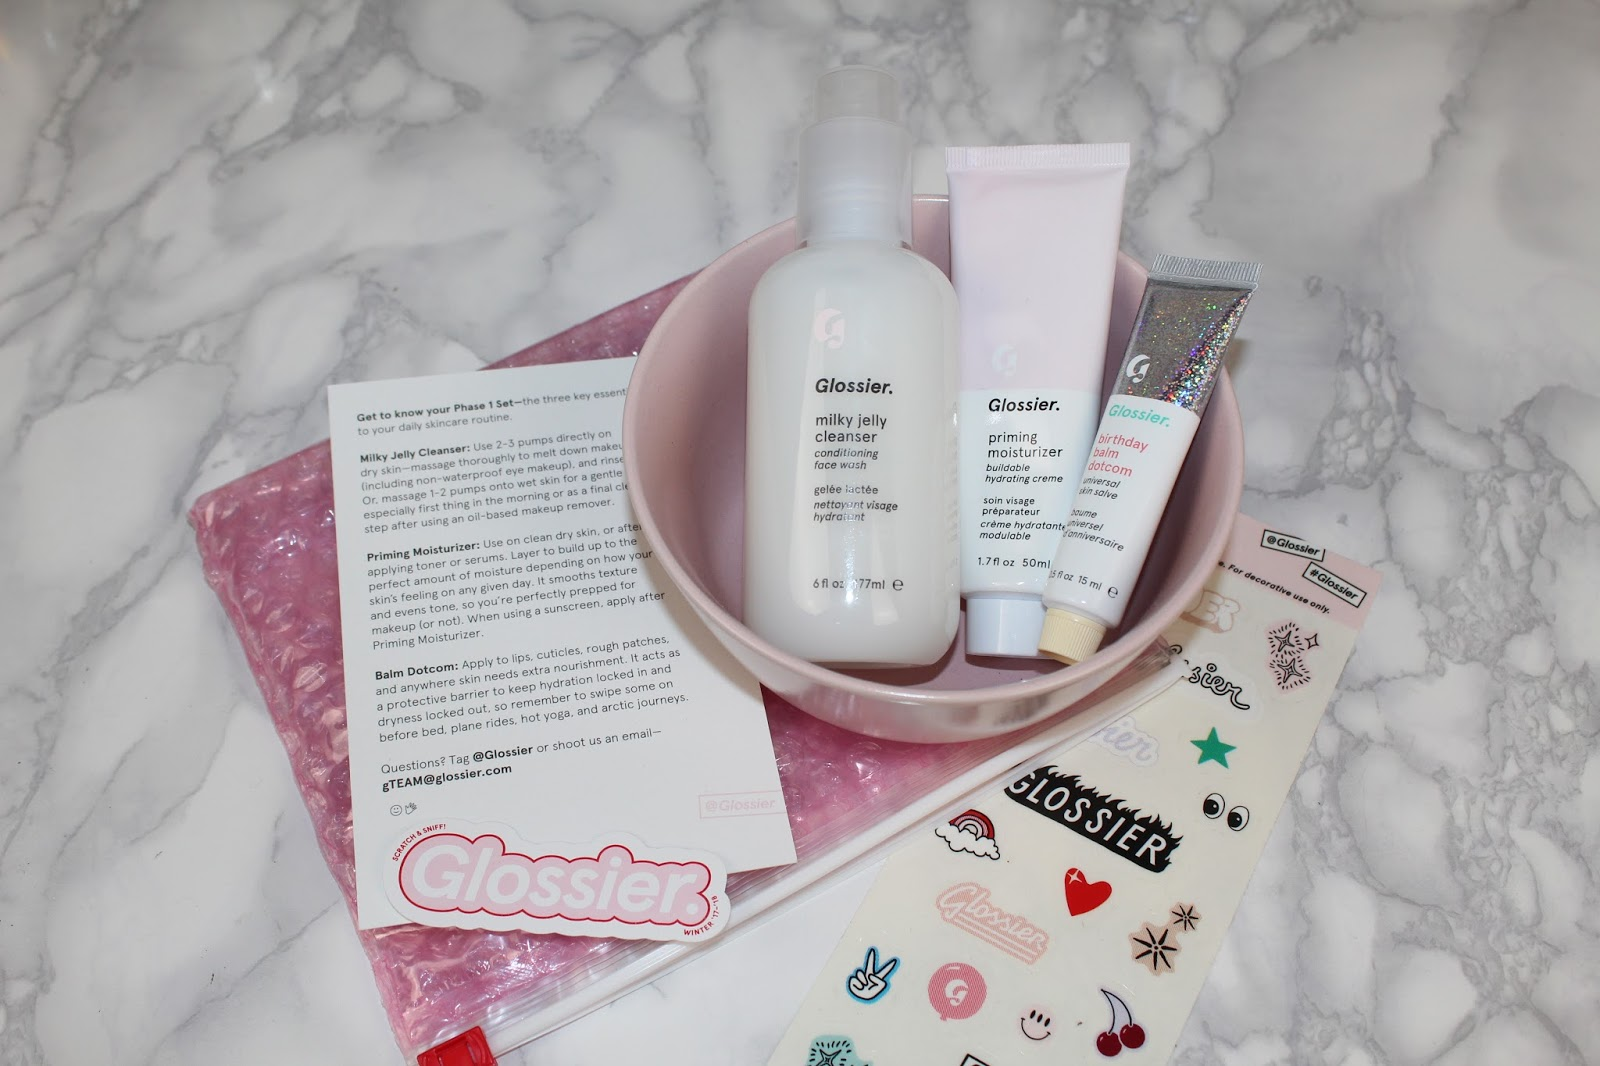 Glossier Phase 1 Set Review and Photos - Glossier Milky Jelly ...